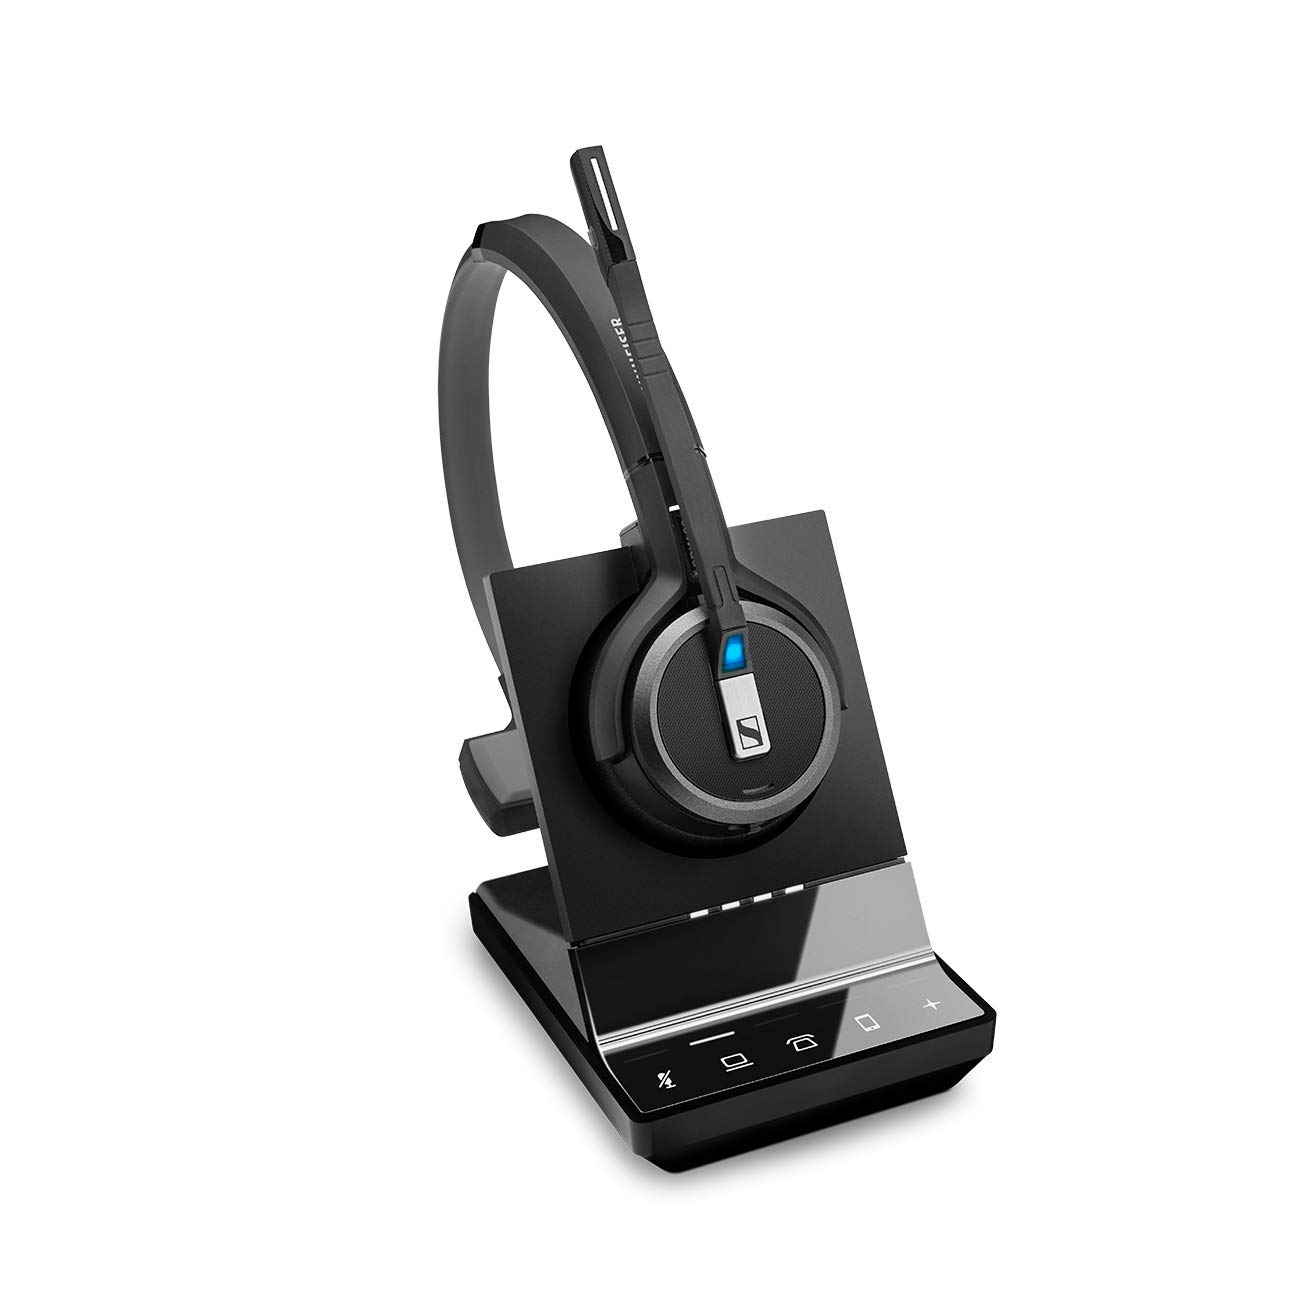 Sennheiser SDW 5036 (507020) - Single-Sided (Monaural) Wireless Dect Headset for Desk Phone Softphone/PC & Mobile Phone Connection Dual Microphone Ultra Noise Cancelling, Black by Sennheiser Enterprise Solution (Image #5)